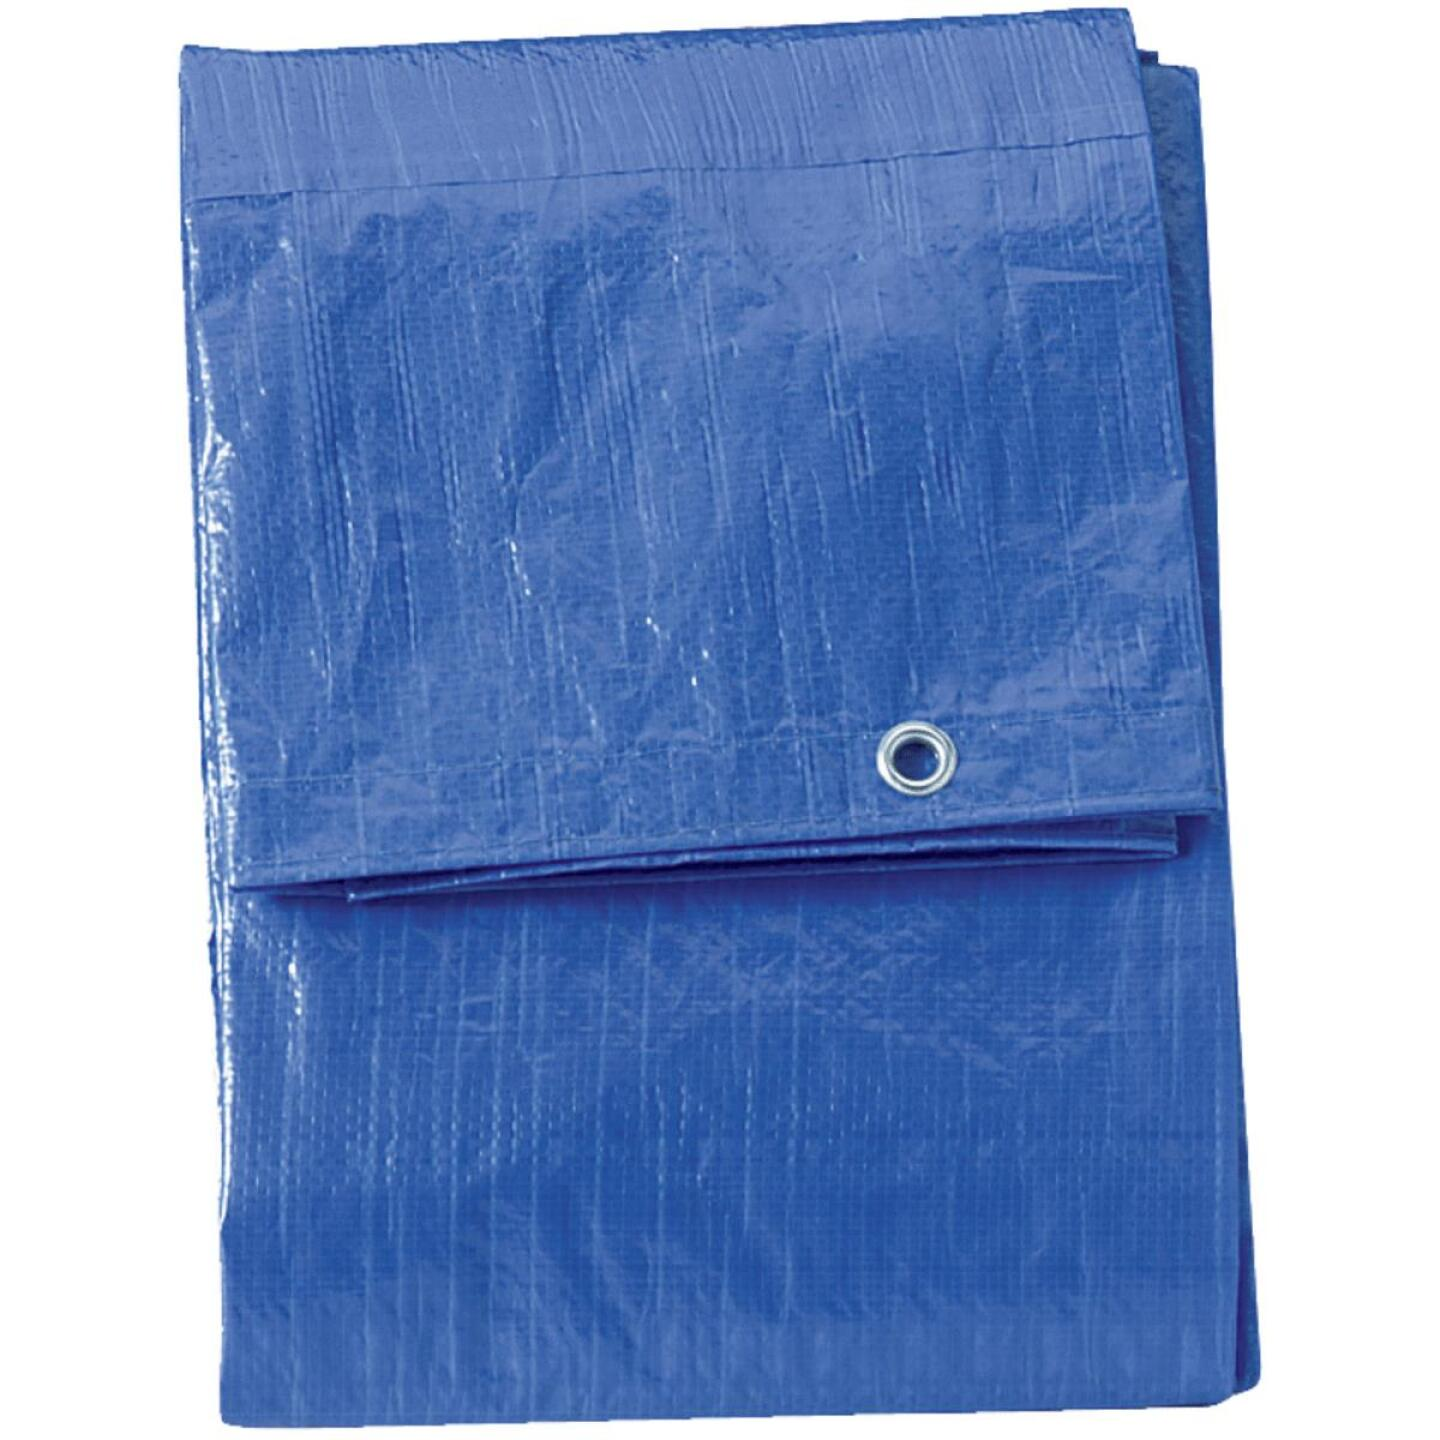 Do it Blue Woven 5 Ft. x 7 Ft. Medium Duty Poly Tarp Image 3